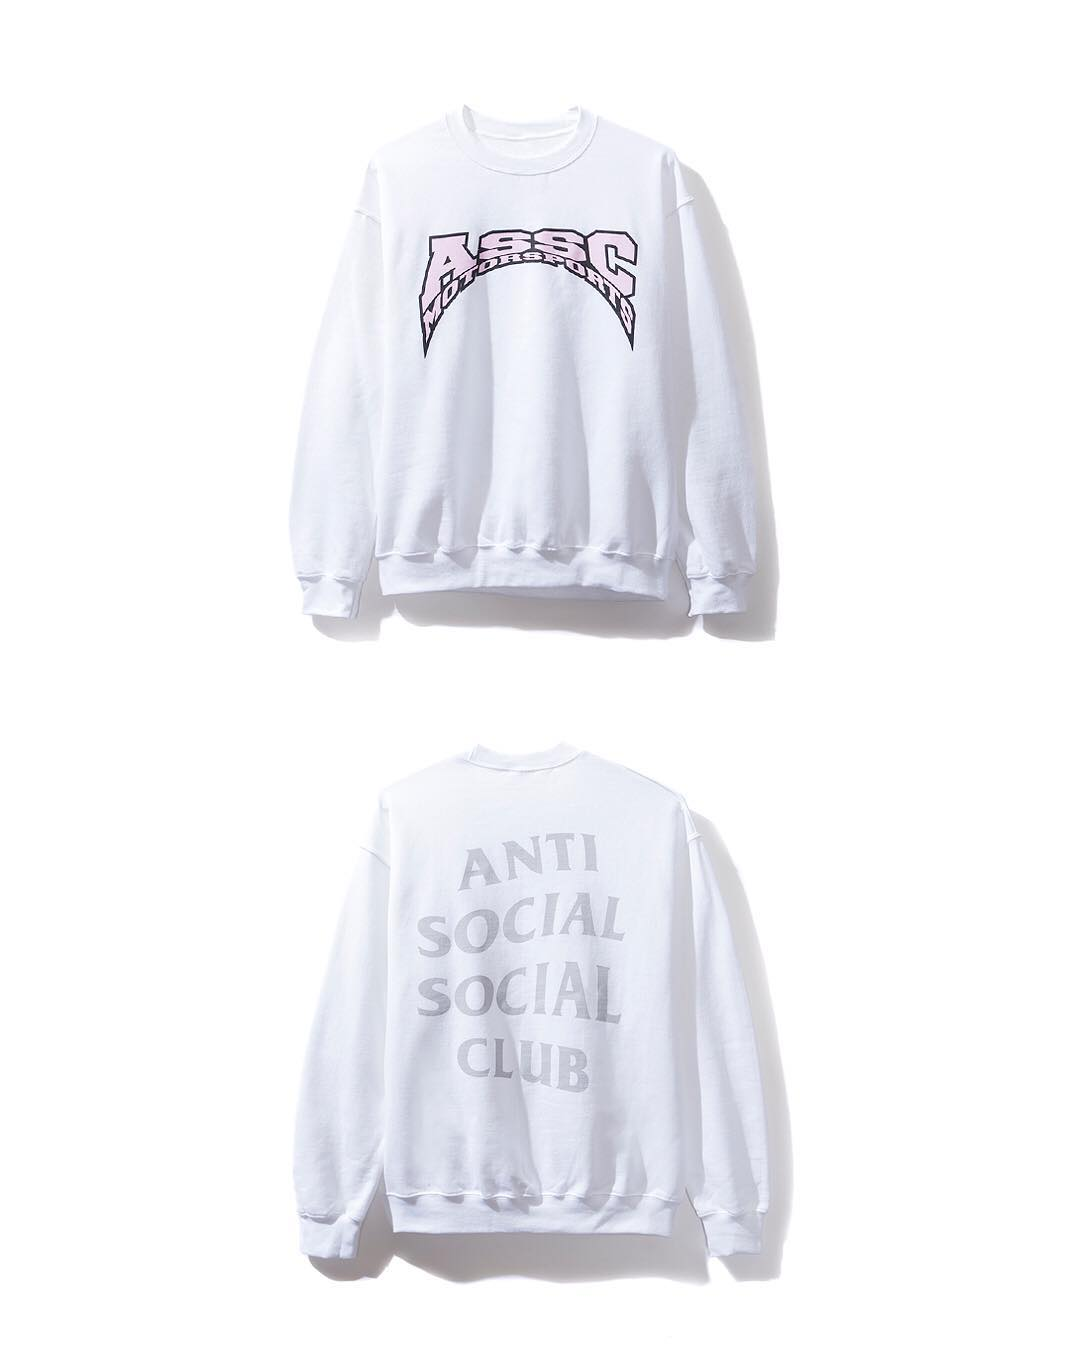 antisocialsocialclub-2018-fall-winter-collection-release-20180804